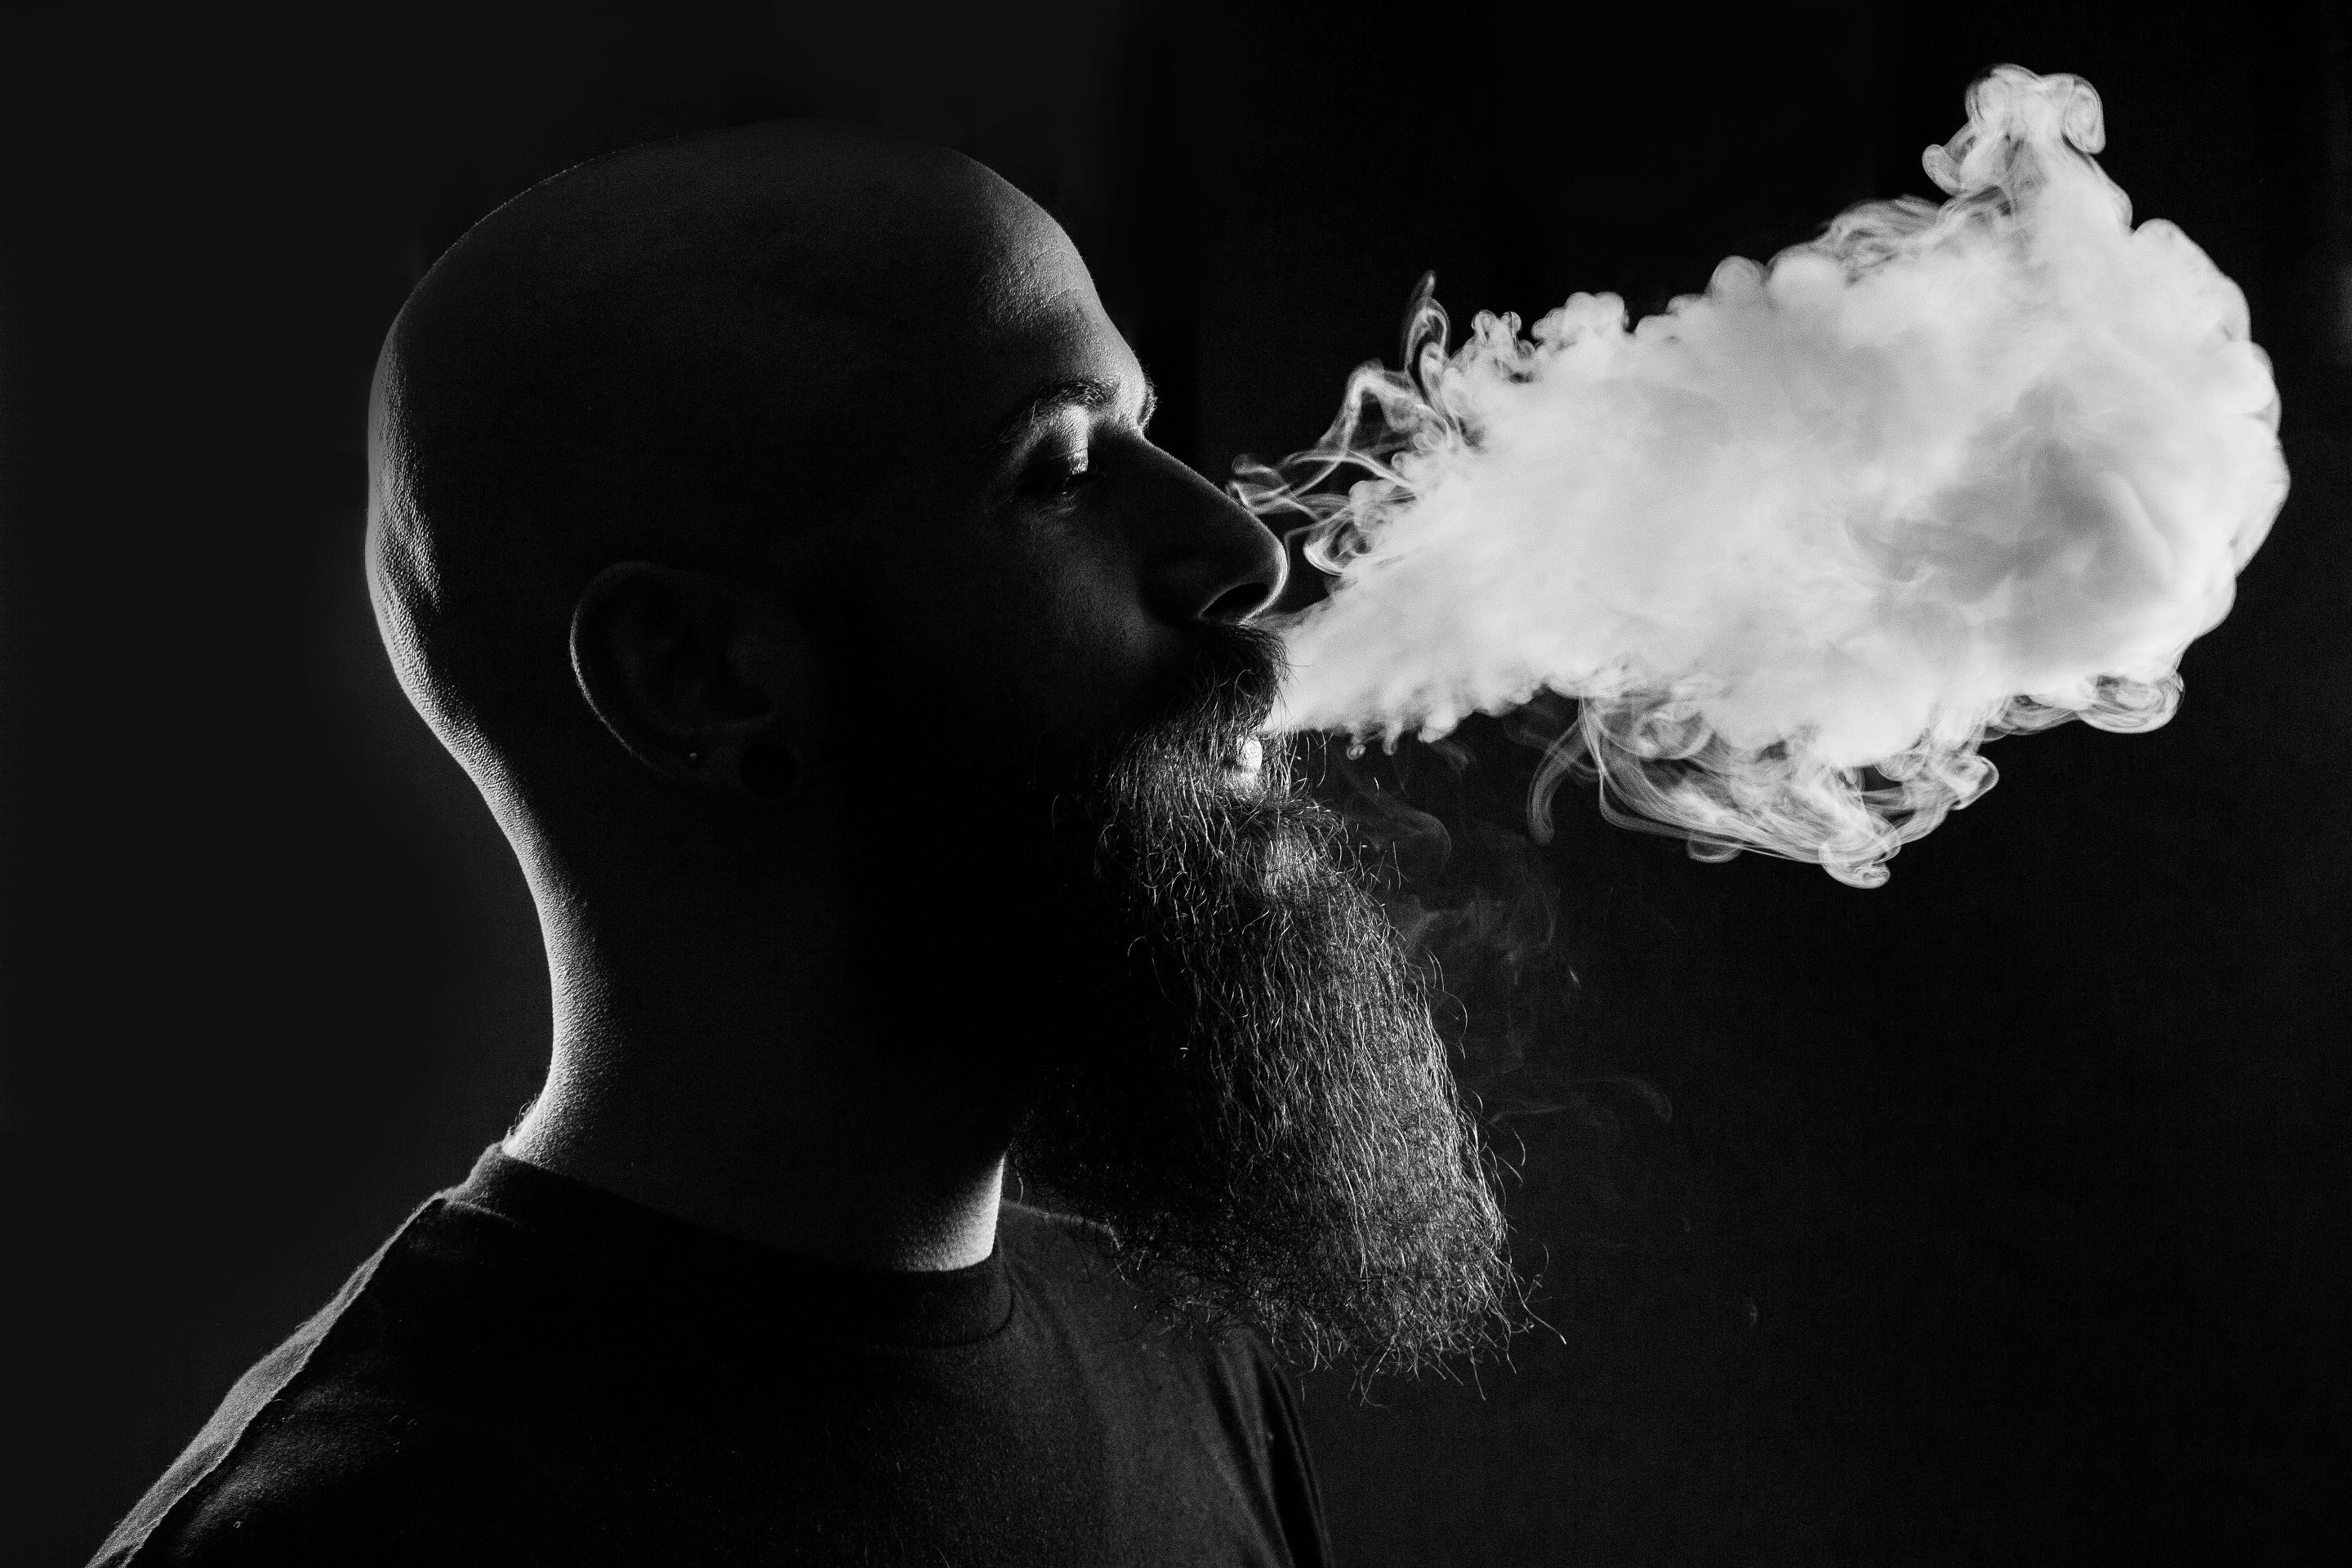 Respiratory Illnesses from Vaping Linked to Vitamin E, Cannabis